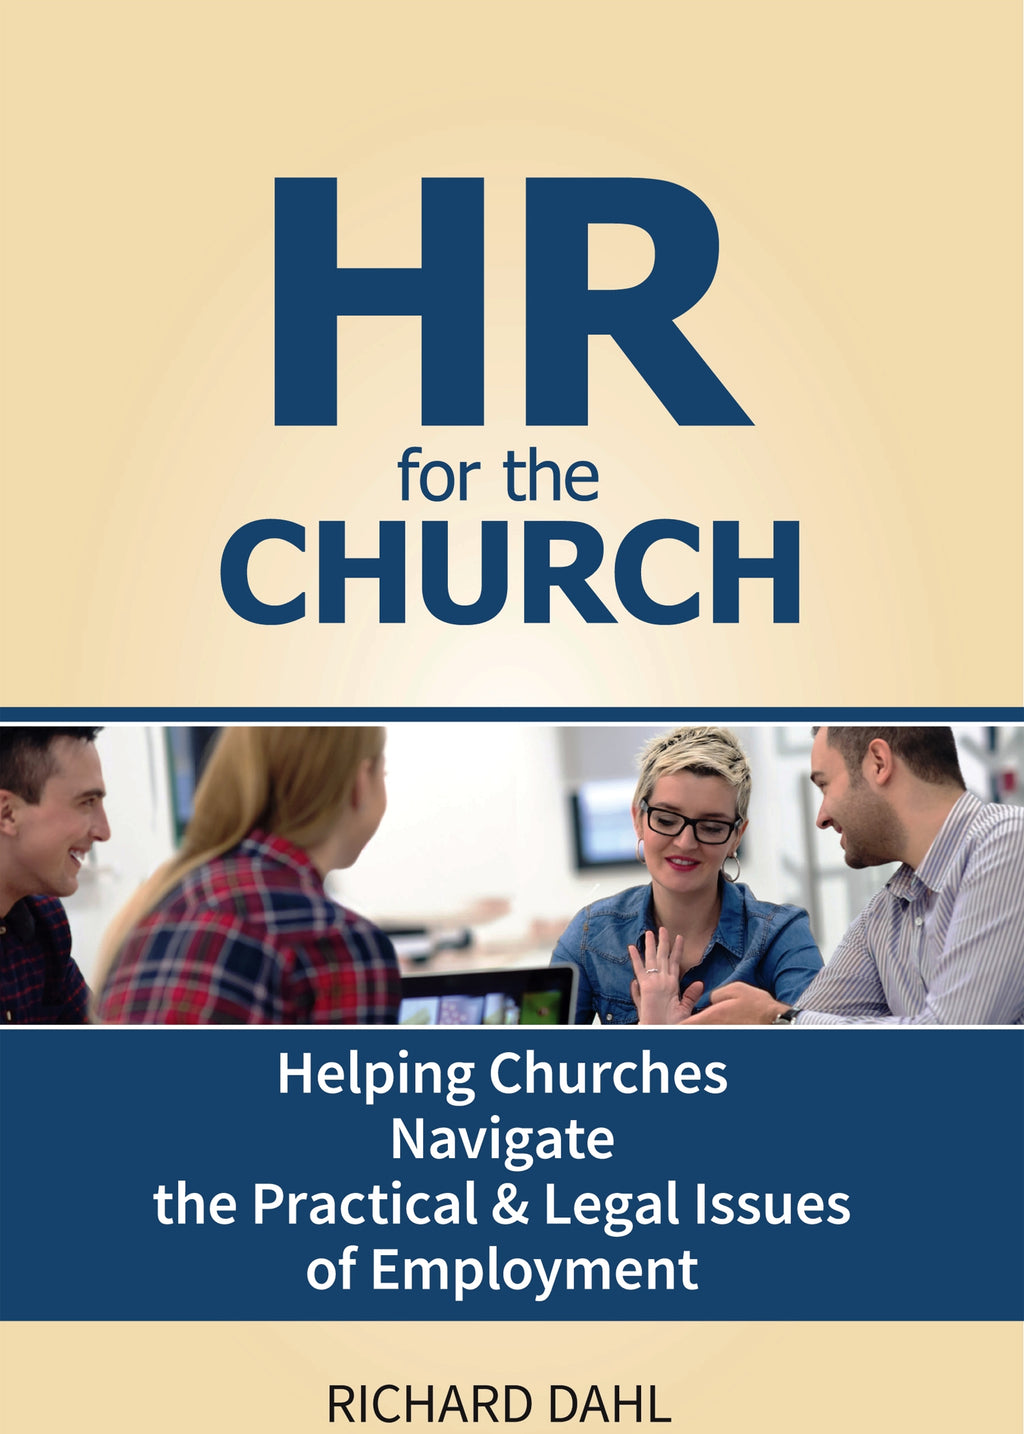 HR for the Church - Helping Churches Navigate the Practical & Legal Issues of Employment